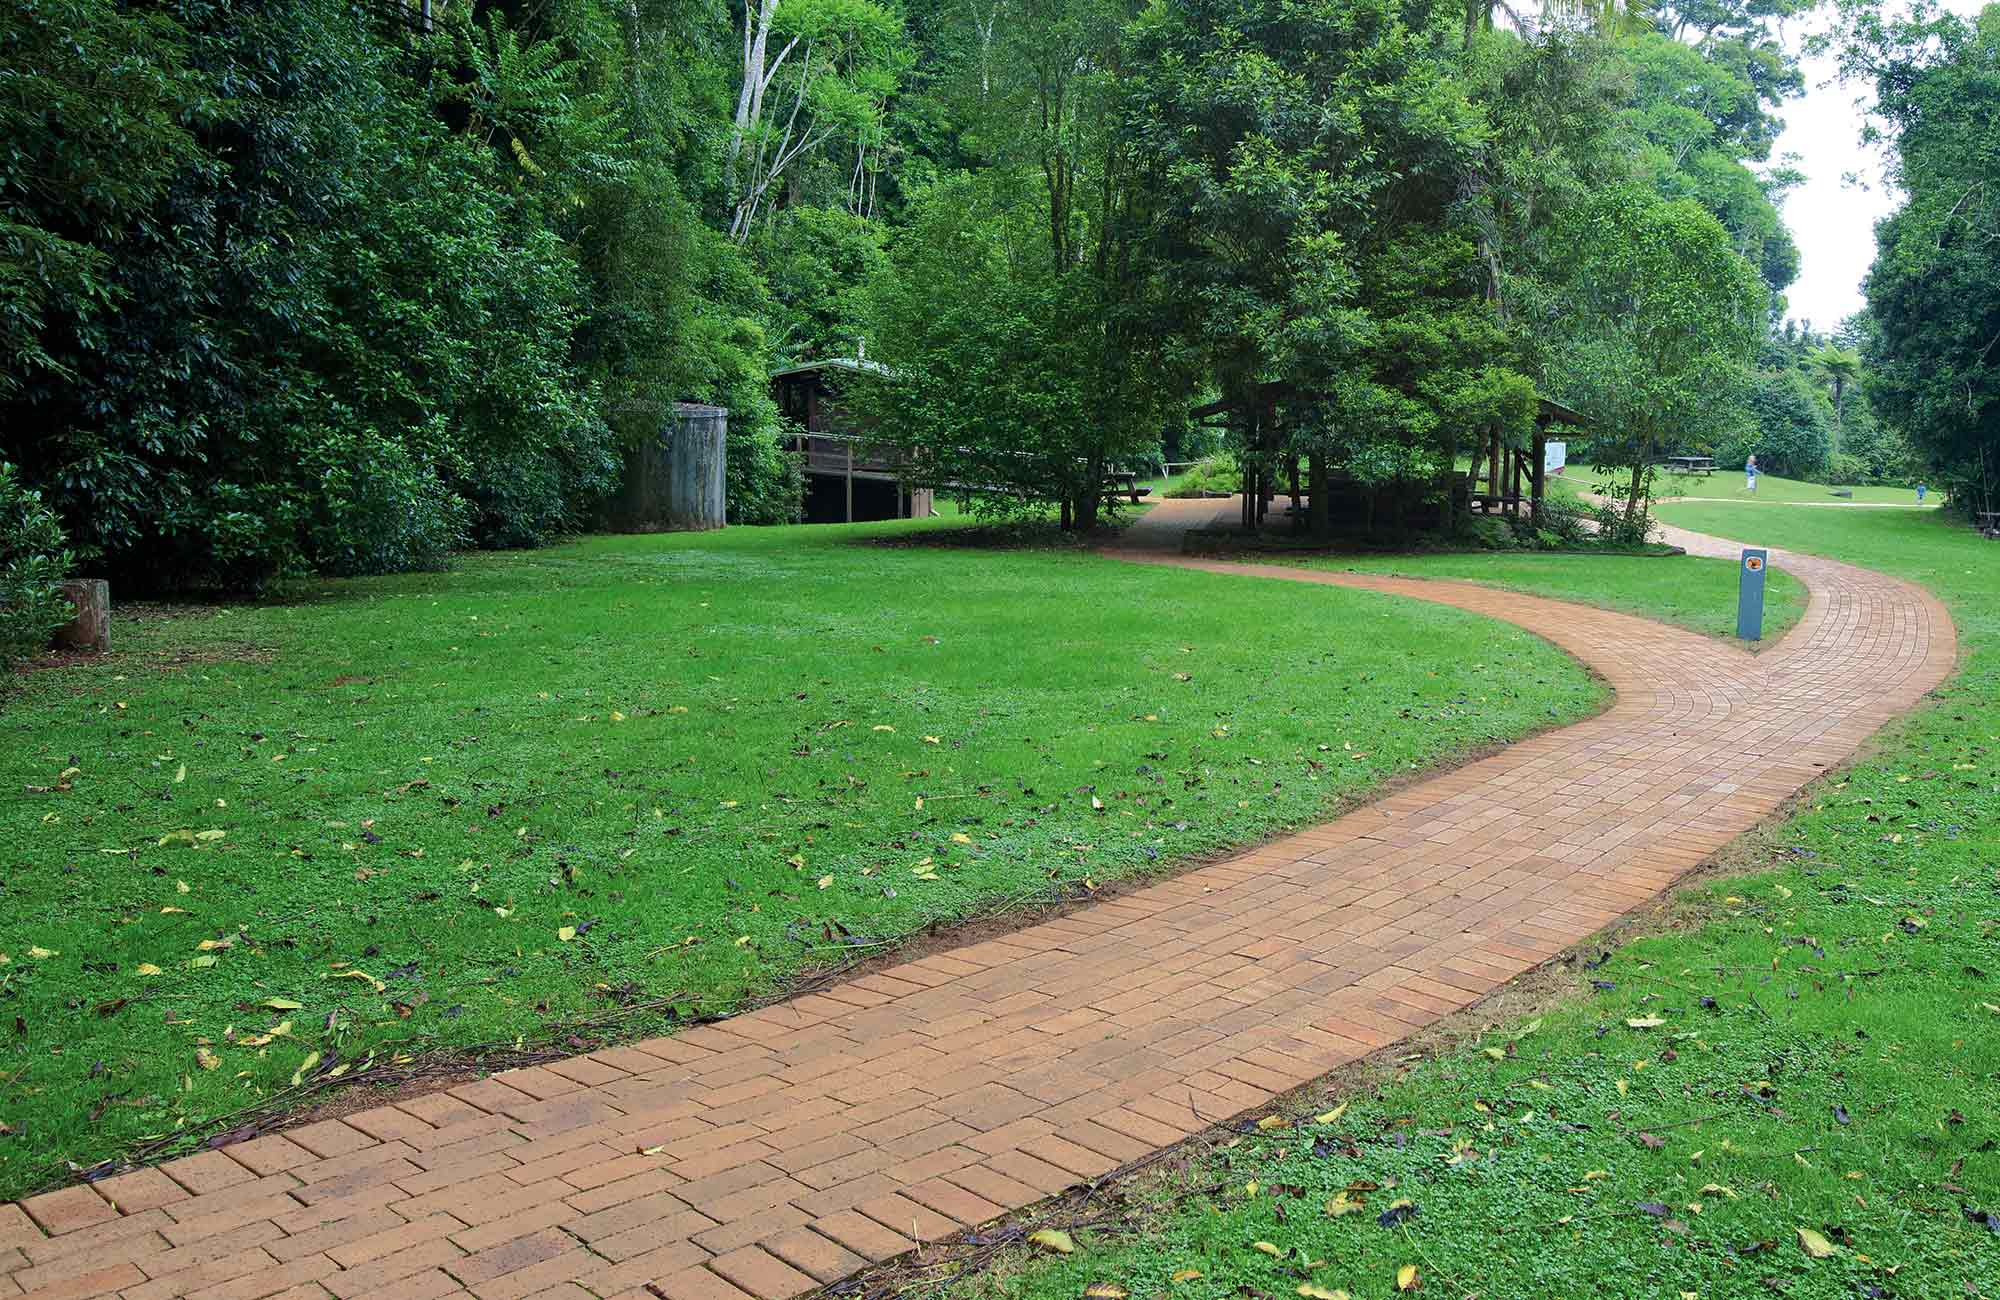 Glade picnic area. Photo: Rob Cleary